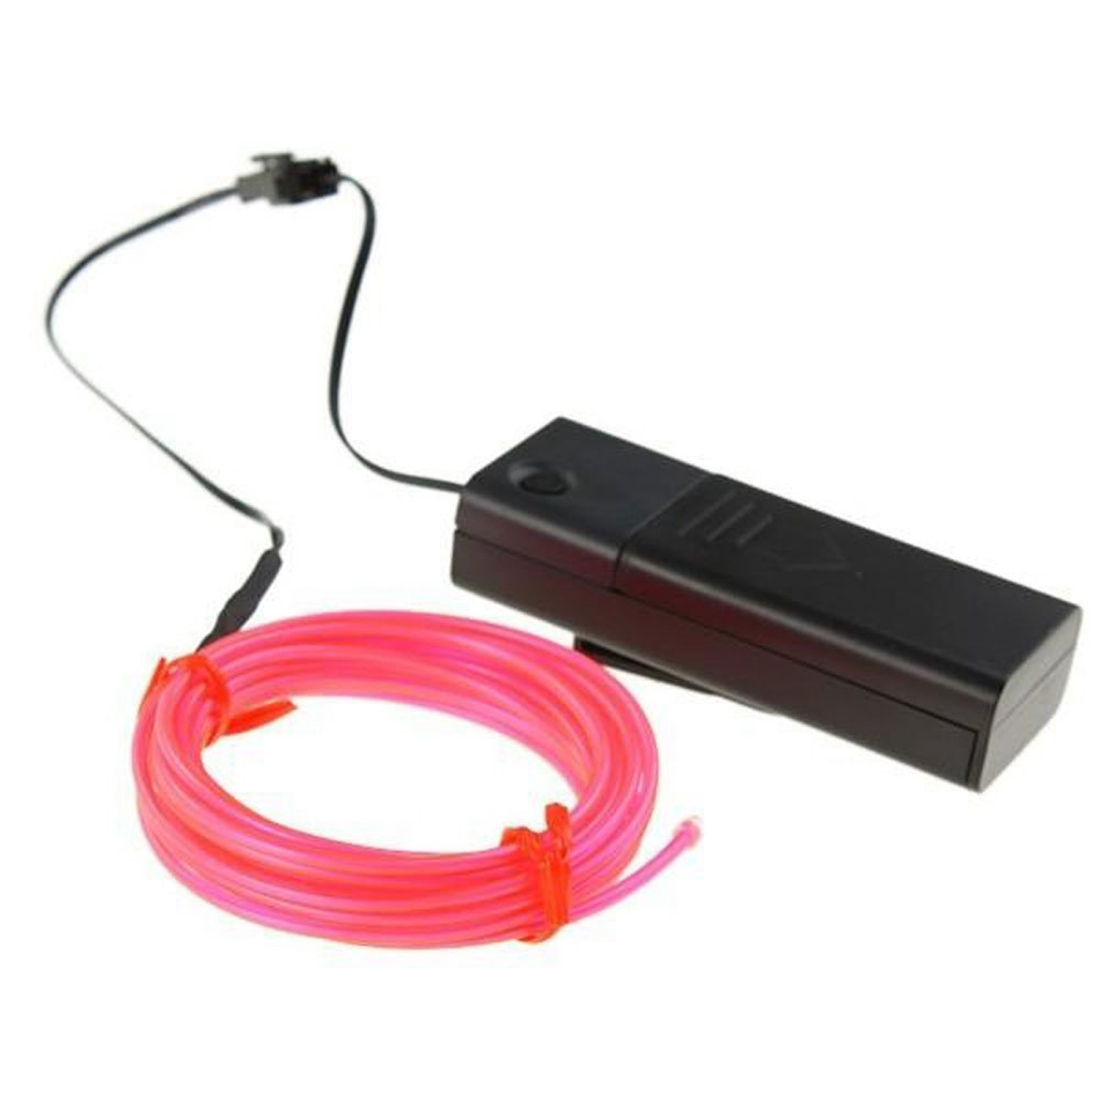 el Wire With Battery Pack Controller pink,3m Constructive Maha Neon Glowing Electroluminescent Wire Agreeable Sweetness